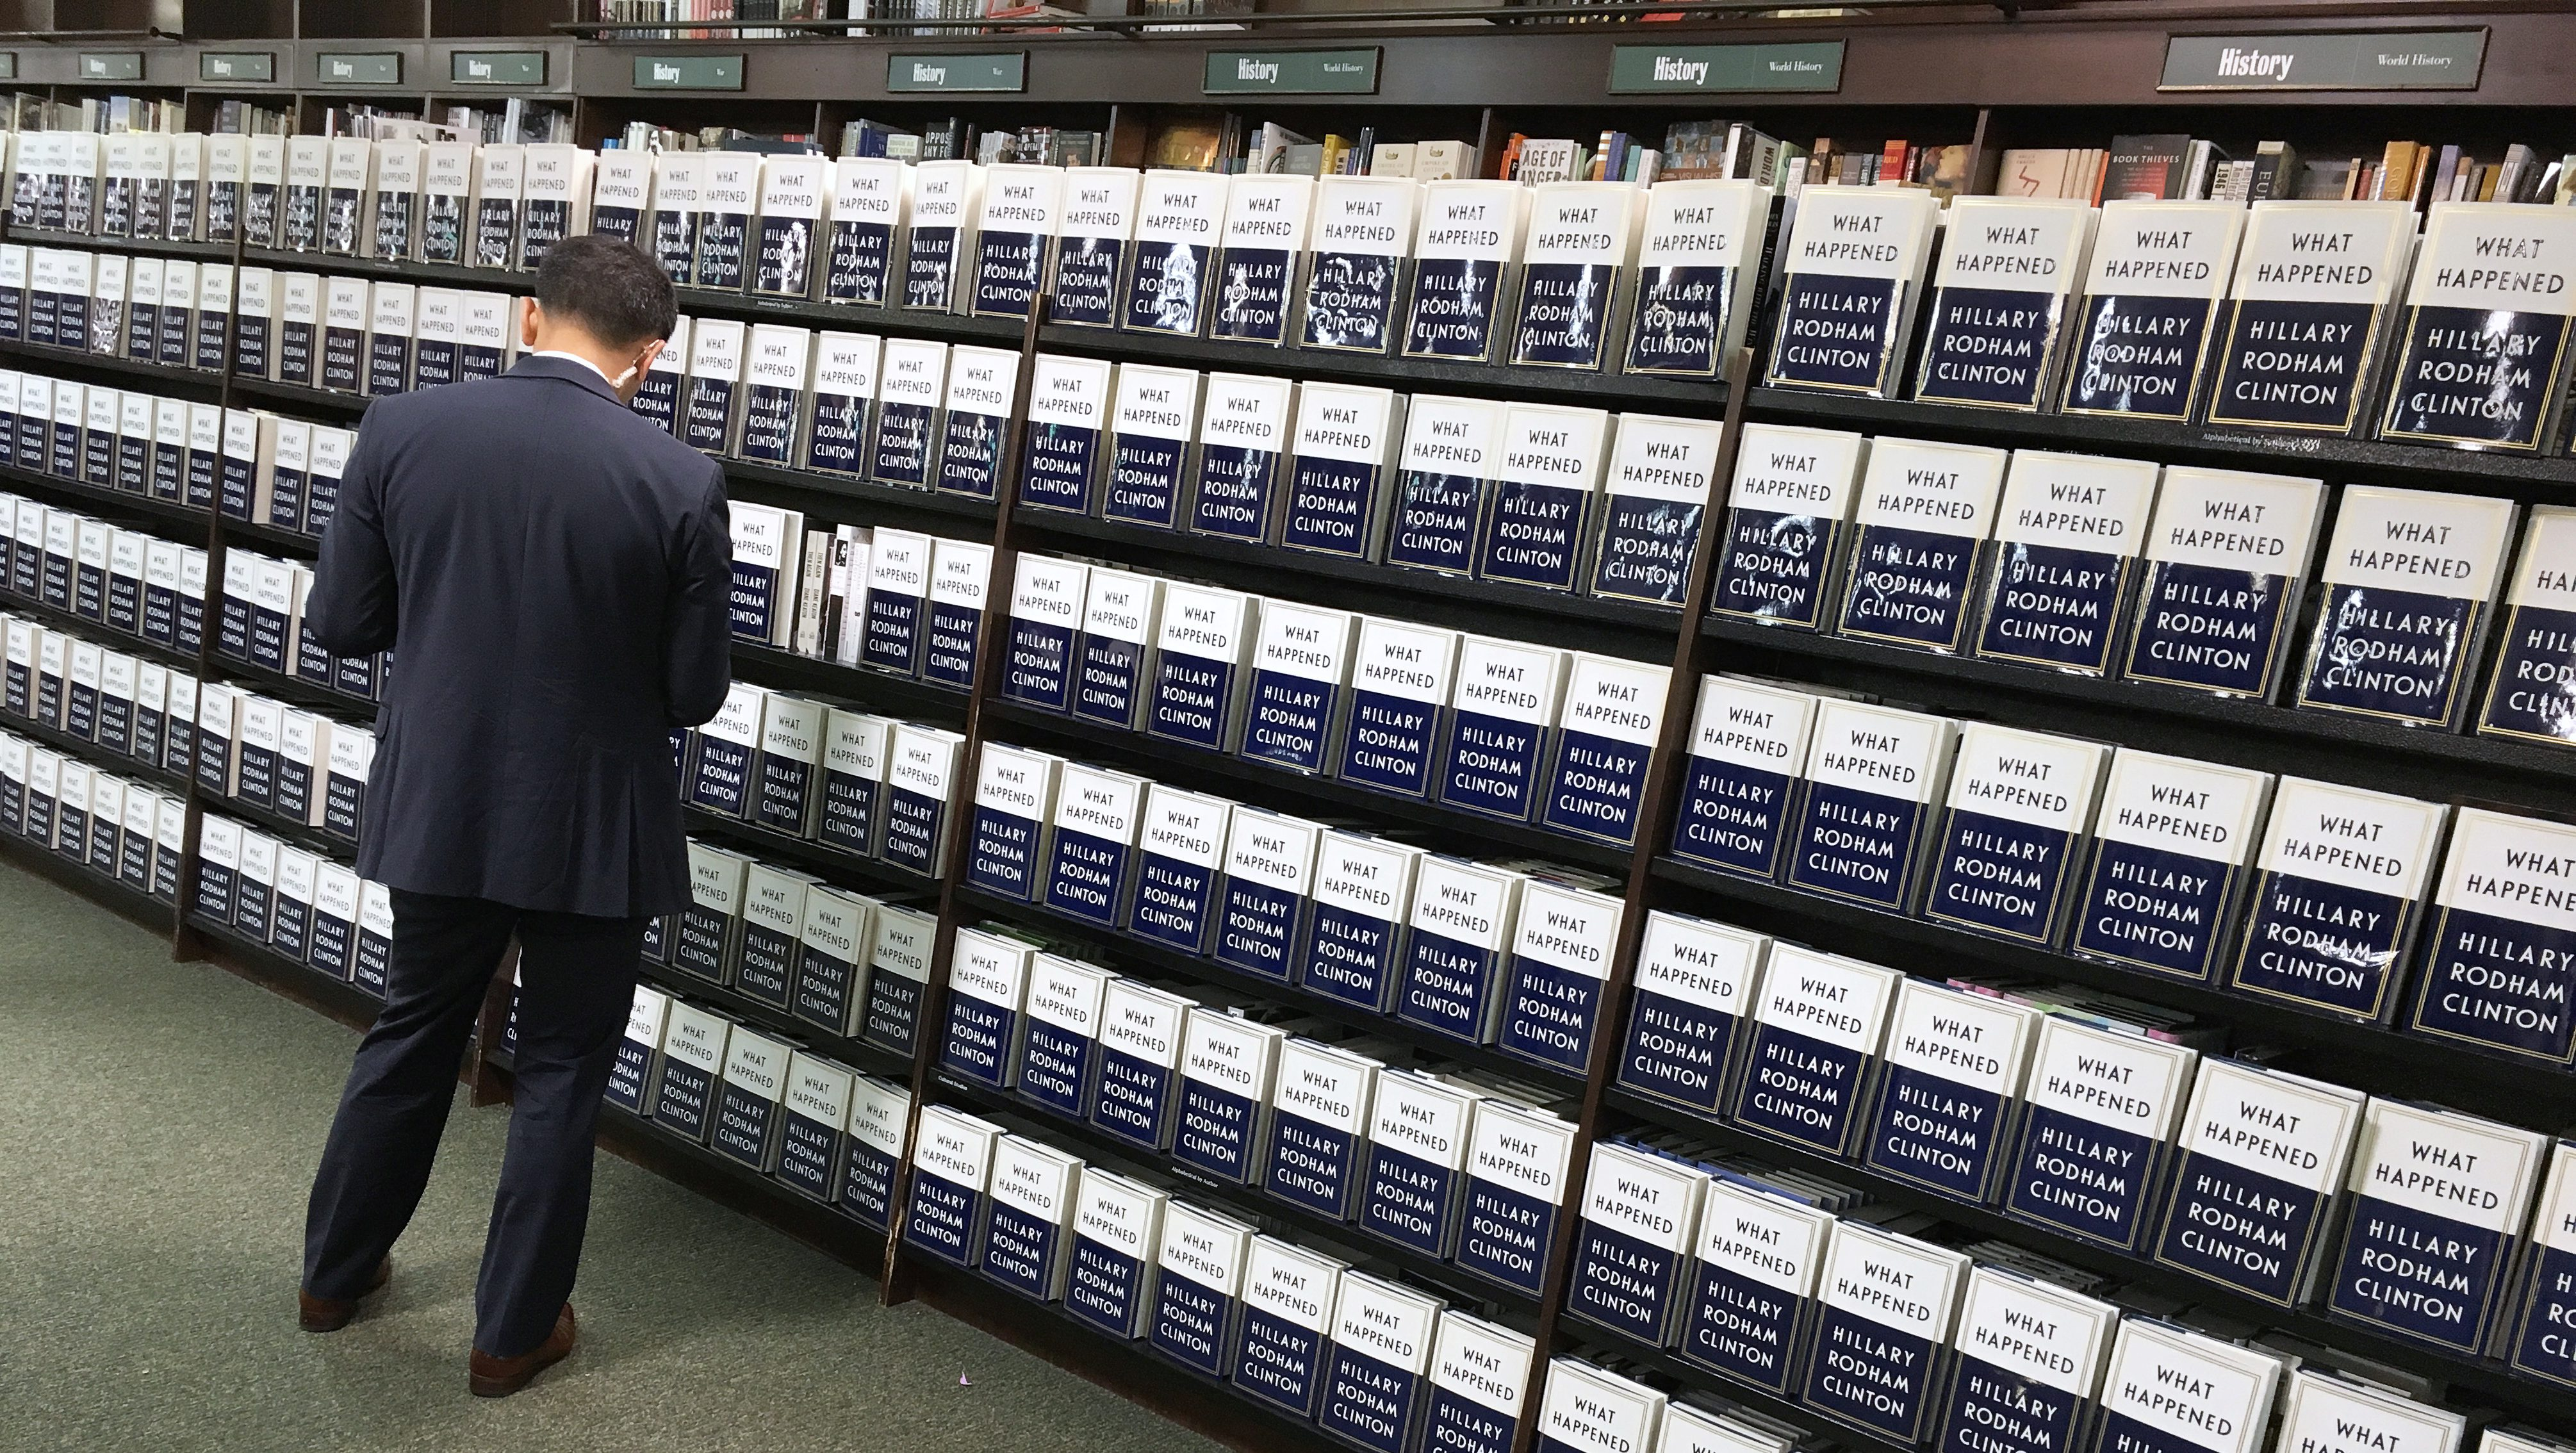 """Copies of Hilary Clinton's new book """"What Happened"""" line shelves before she arrives for a book signing in Barnes & Noble Union Square in Manhattan, New York, US September 12 2017.  REUTERS/Andrew Kelly - RC16FA6E68D0"""